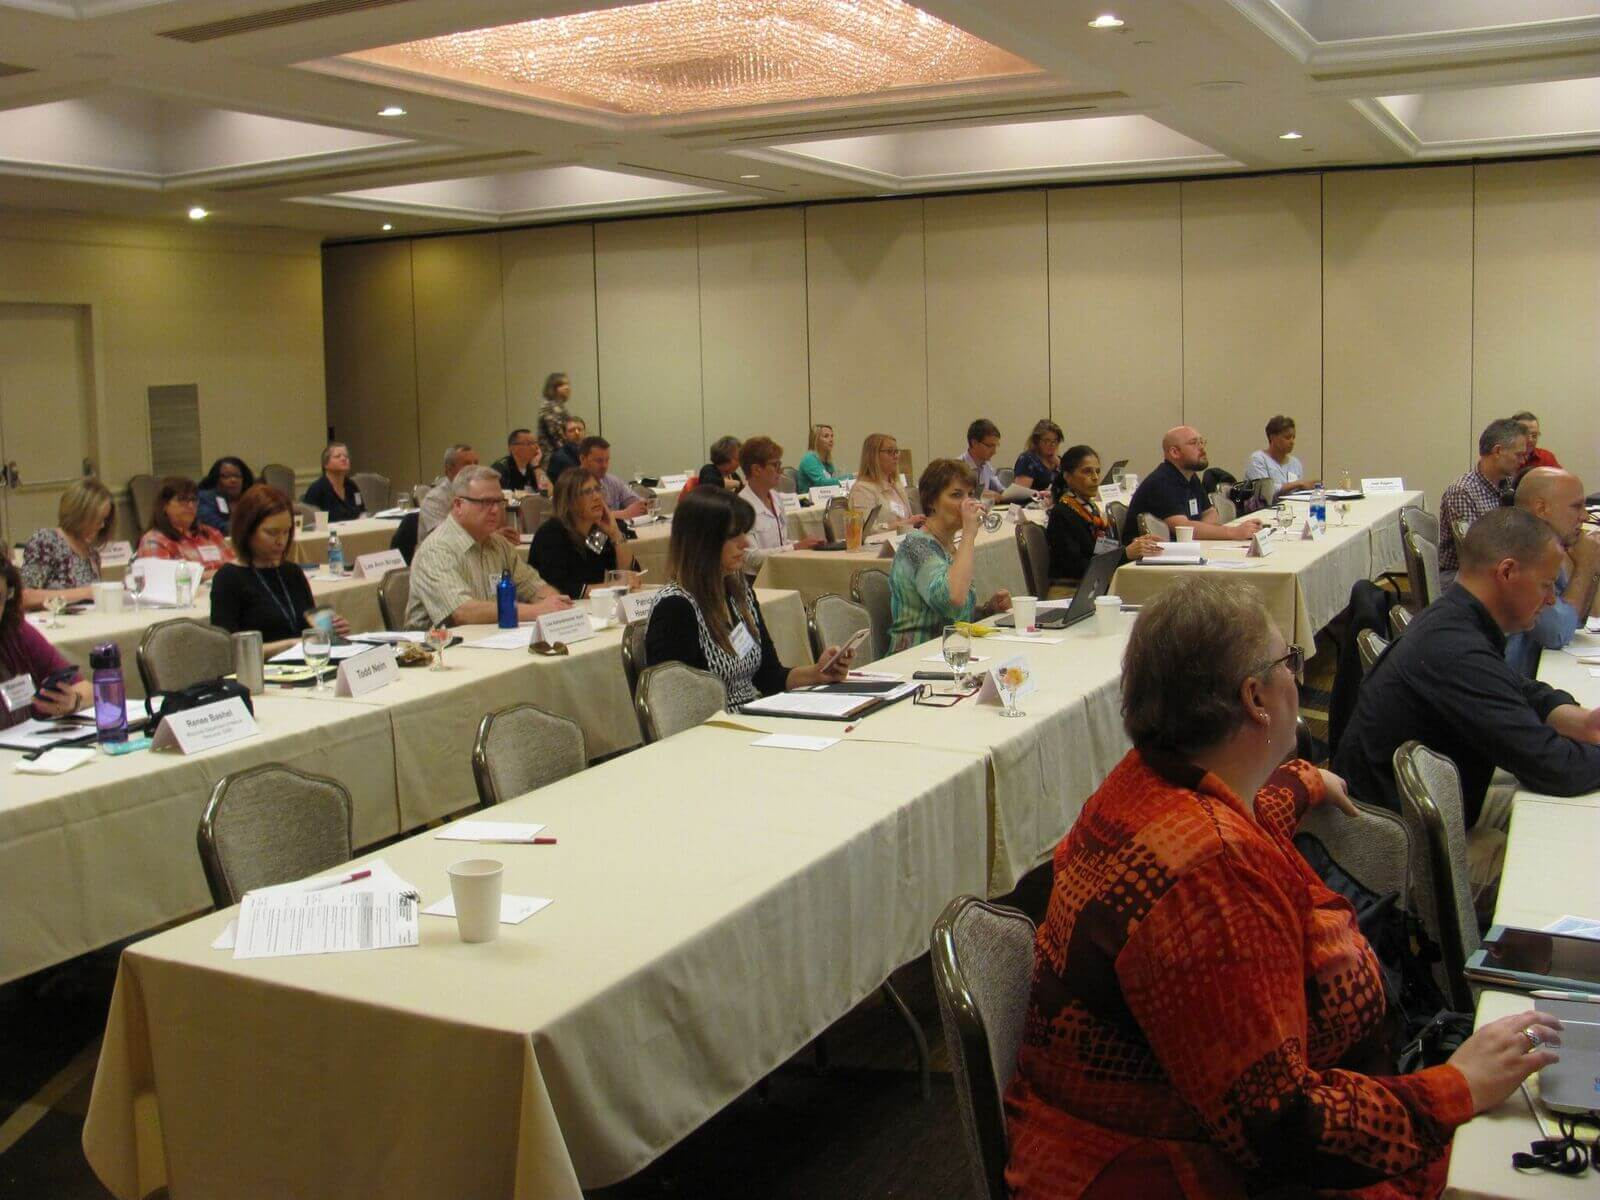 Image of conference attendees.